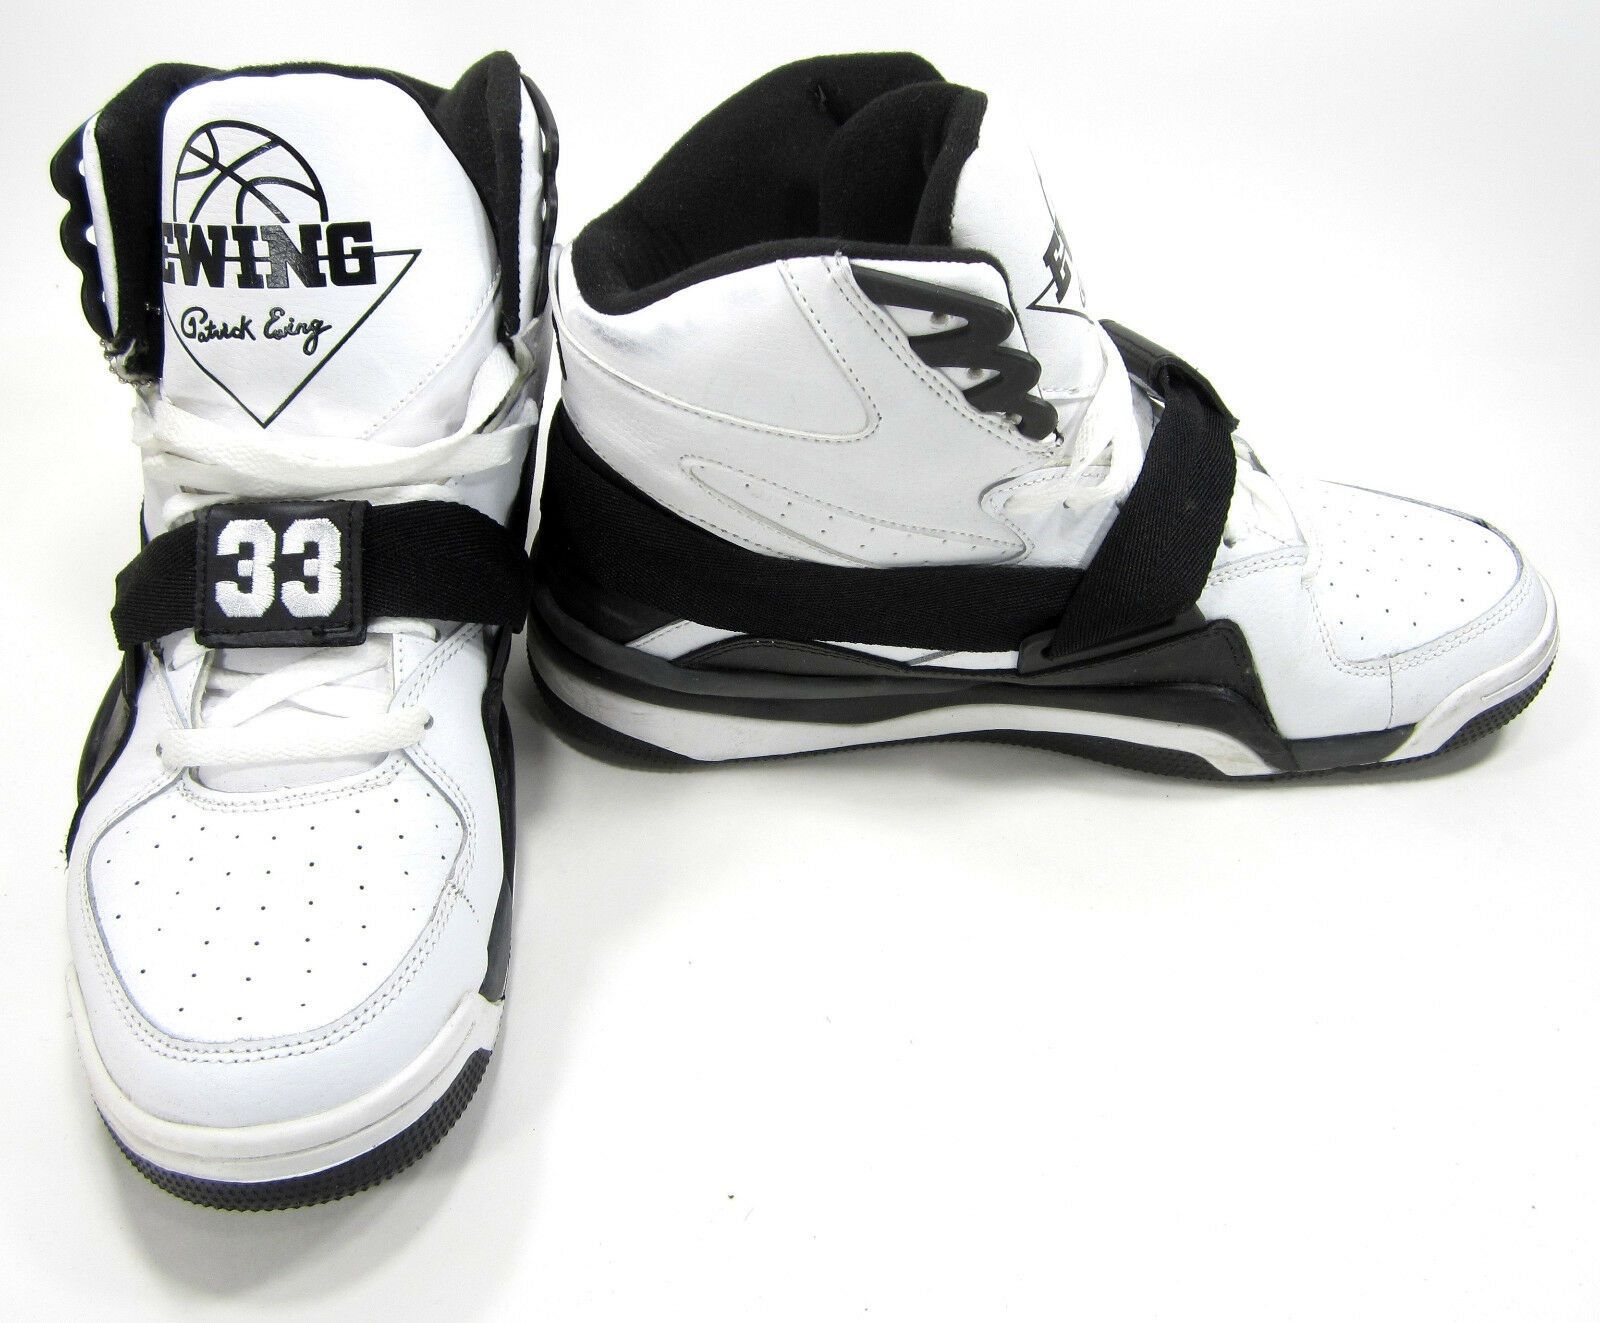 14edc3c6f864e Ewing Shoes 33 33 33 Hi Leather Athletic Sports White Black Sneakers Size 11  8f83db